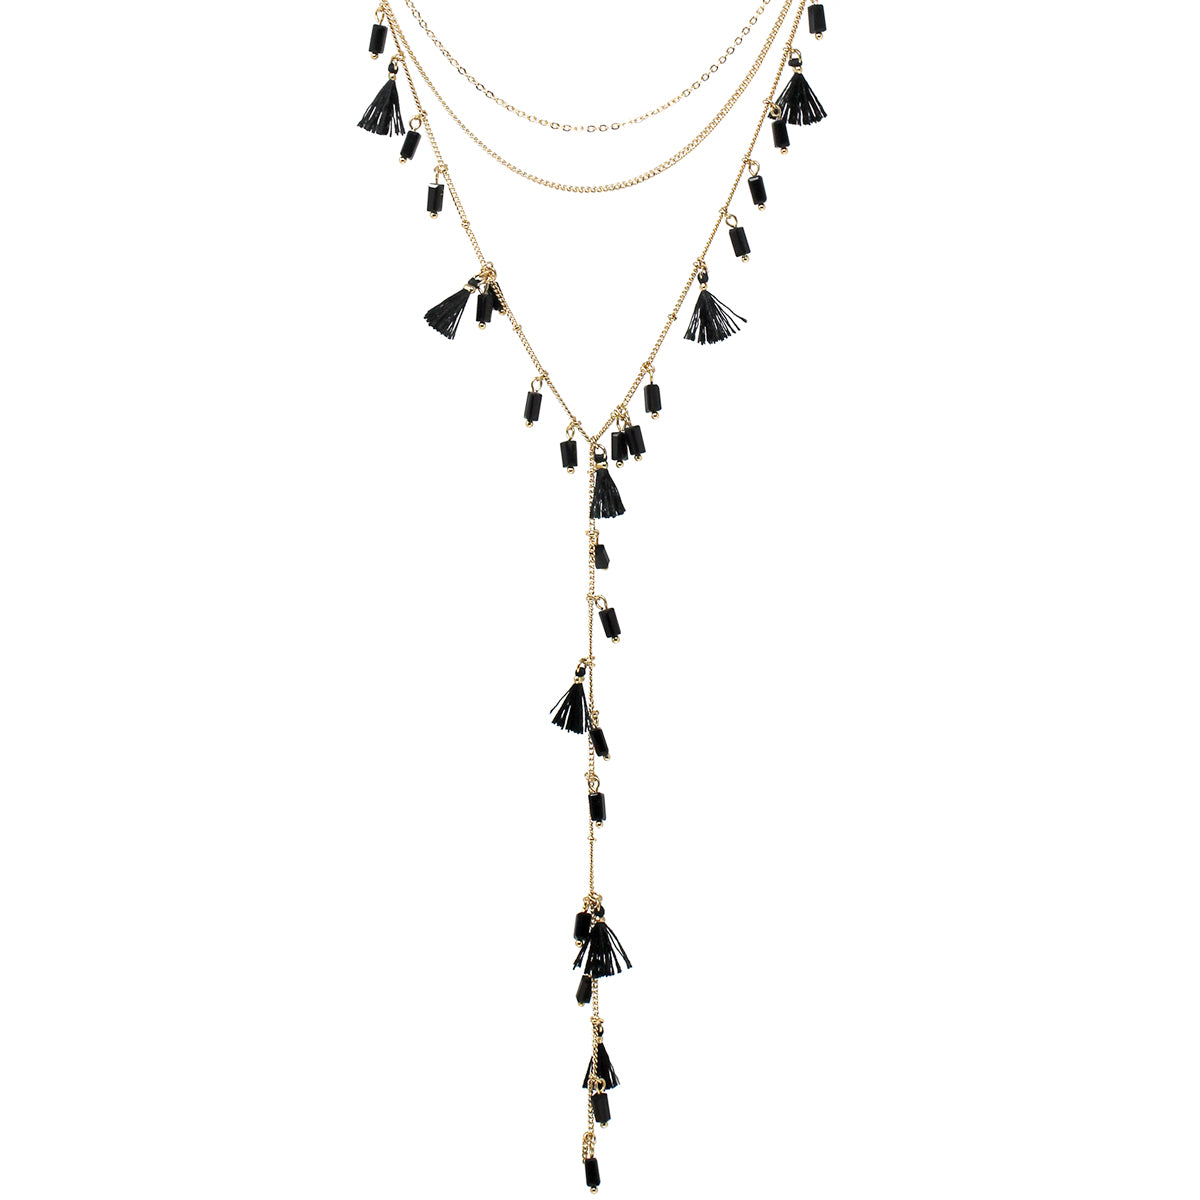 Tassel With Glass Bead Dangle Multi Layered Y- Shape Necklace